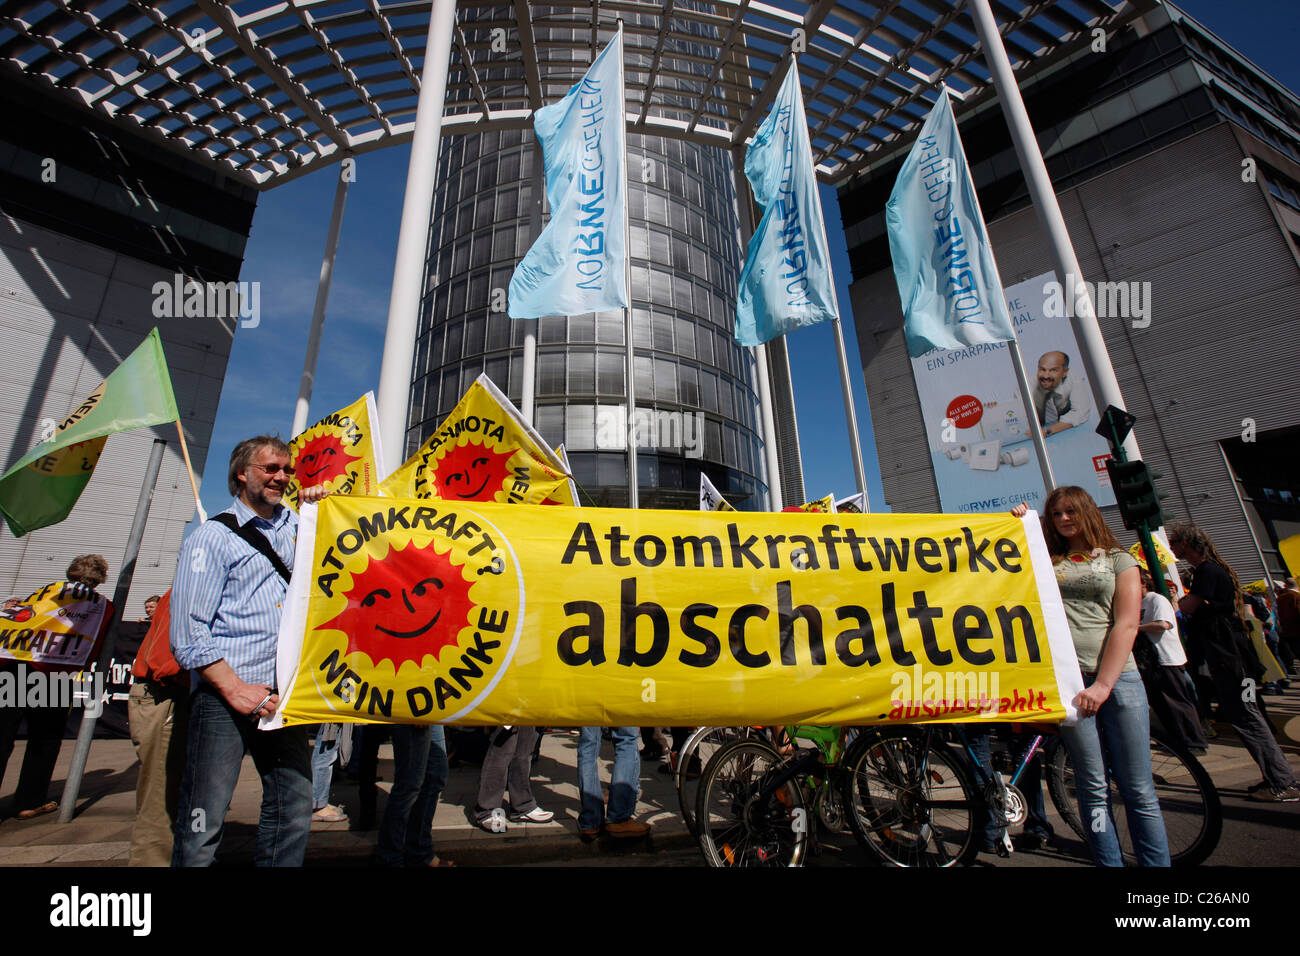 Anti atomic power demonstration, in front of Germany's leading power company headquarter,  RWE in Essen, Germany. Stock Photo